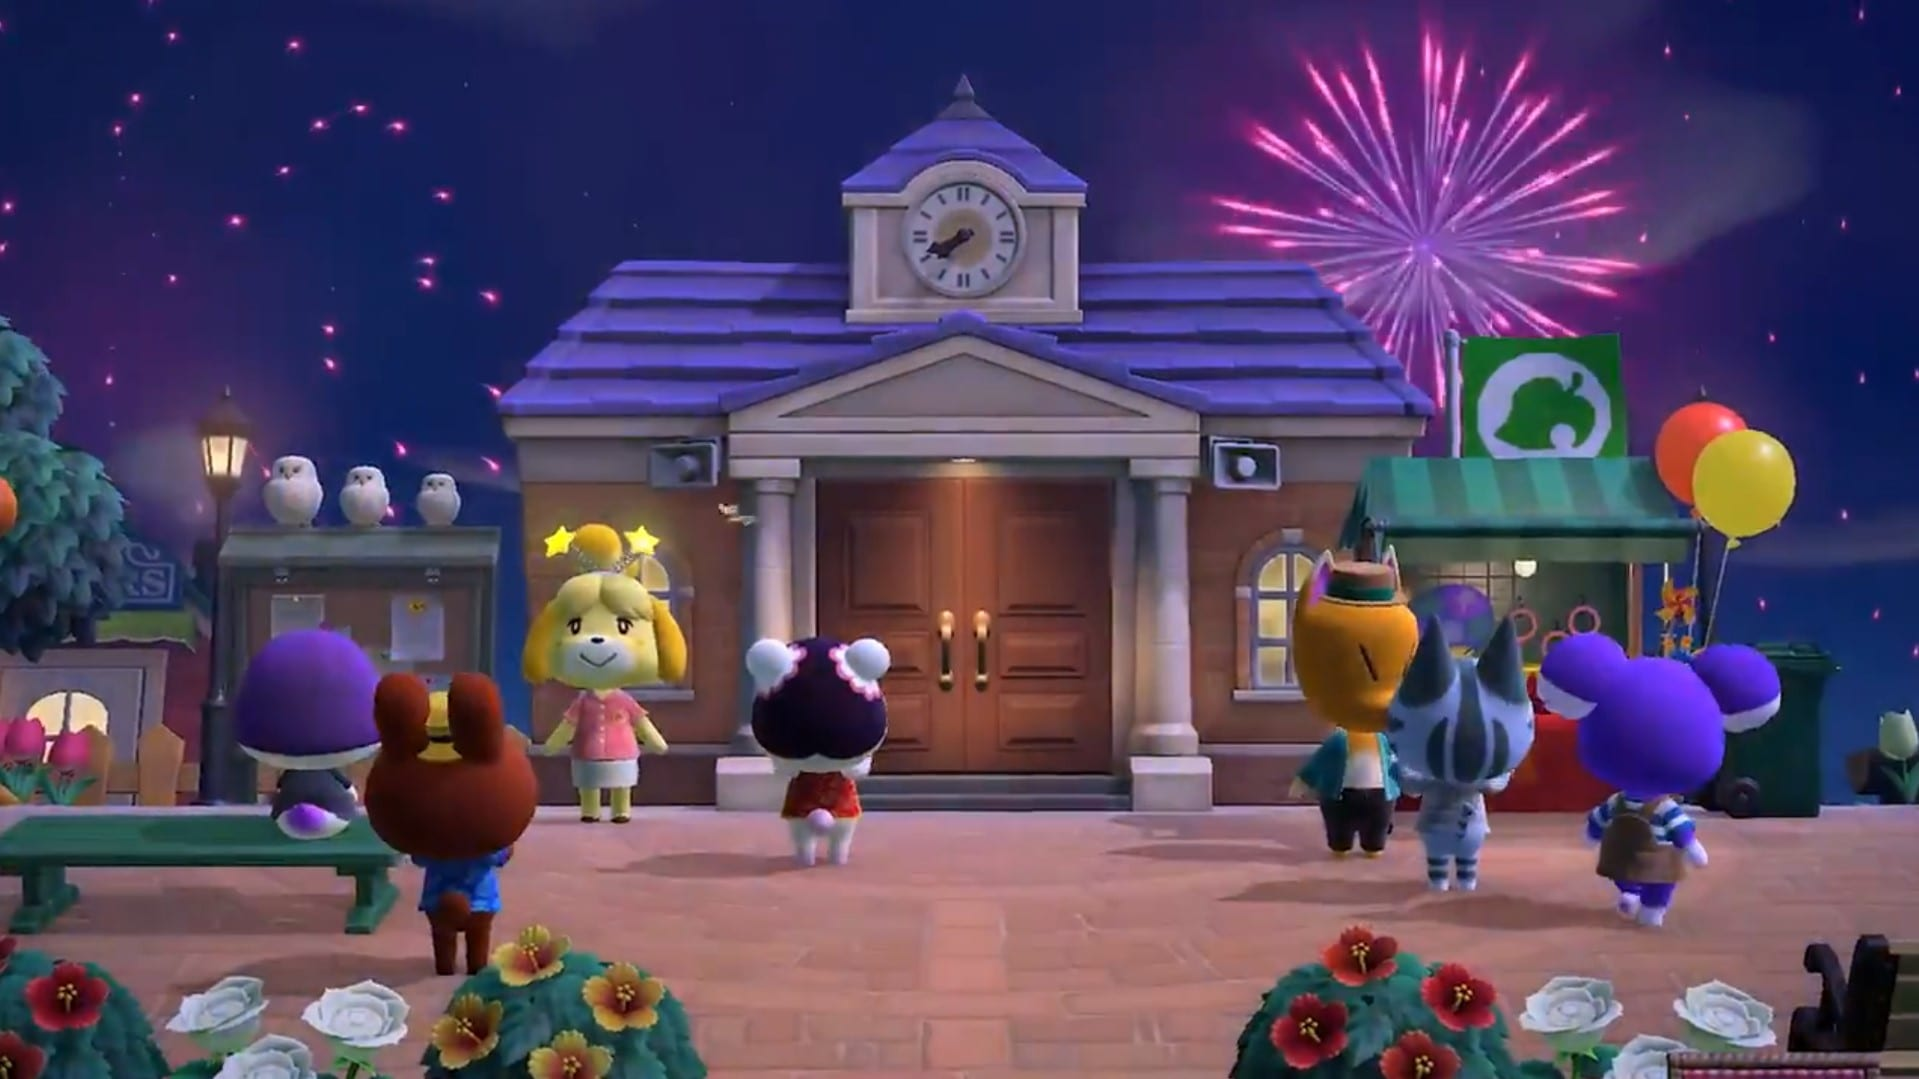 Animal Crossing New Horizons - How to Get King Tut Mask